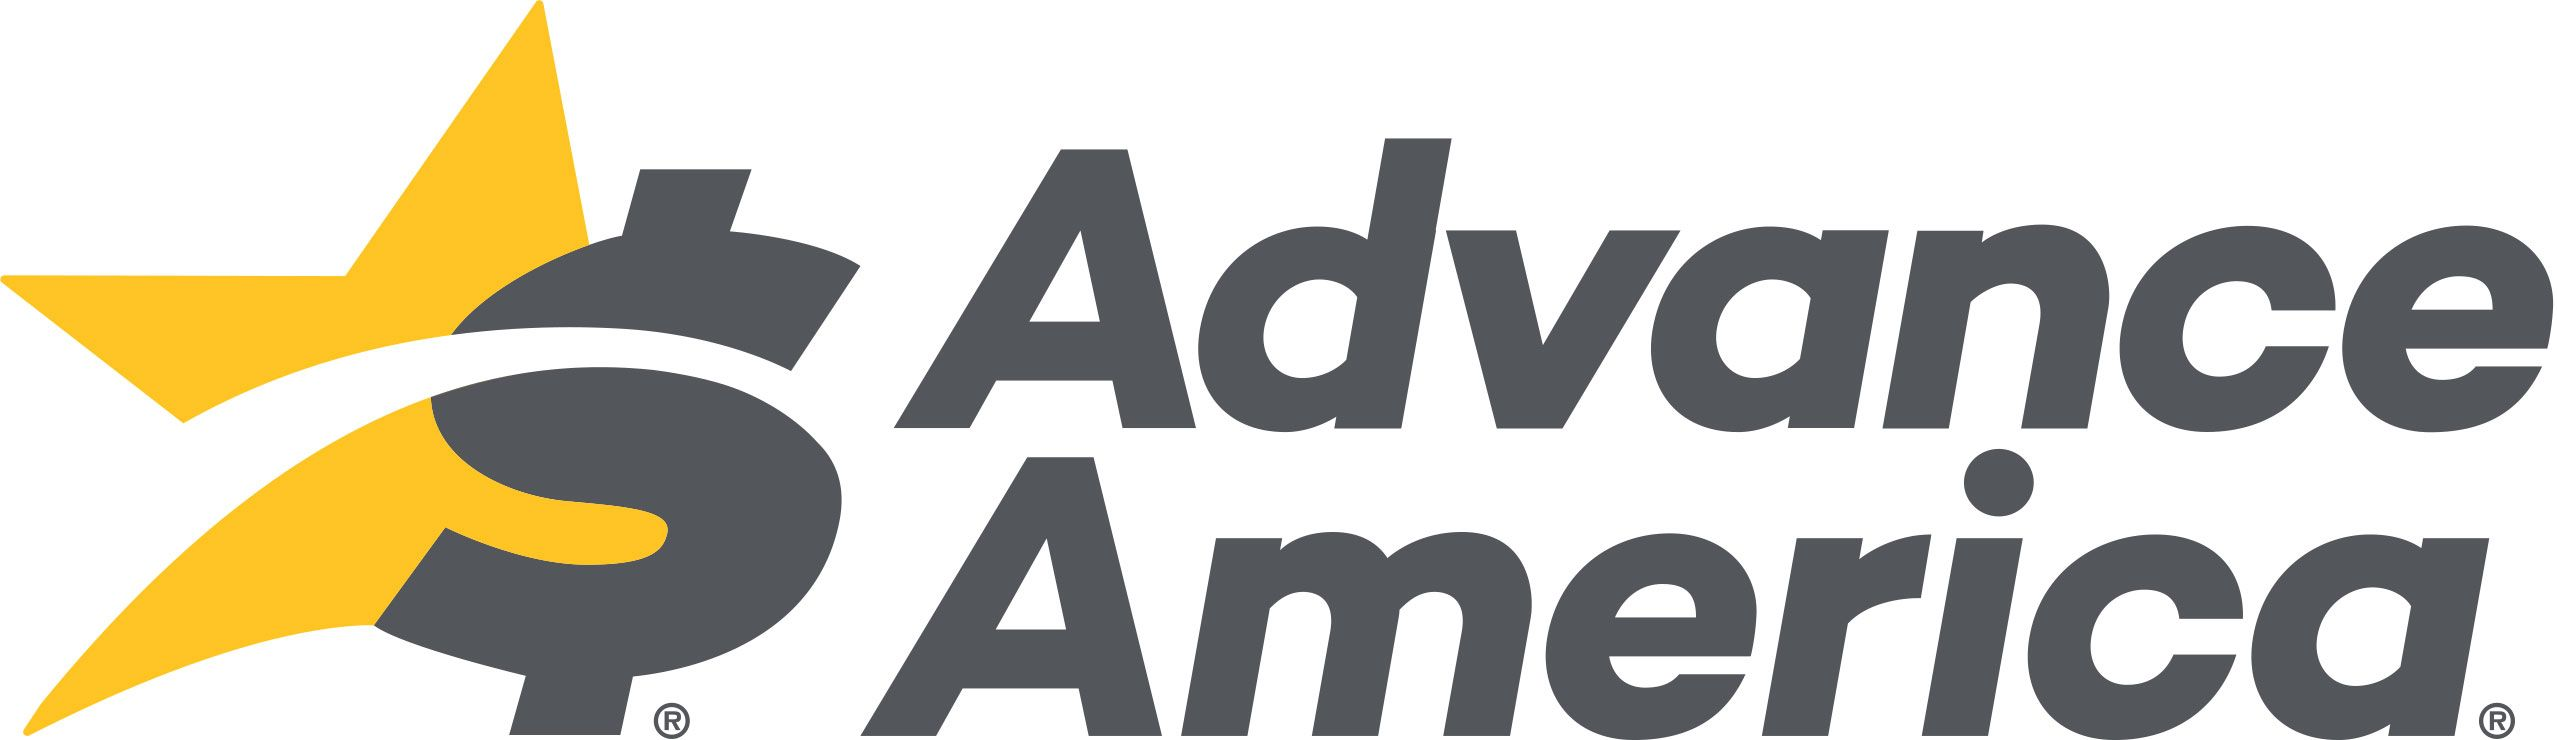 If You Need Extra Money In A Flash Check Out These Sites Like Advance America The Approval Rate On These Sites Are Extremely High America Loan Company Loan